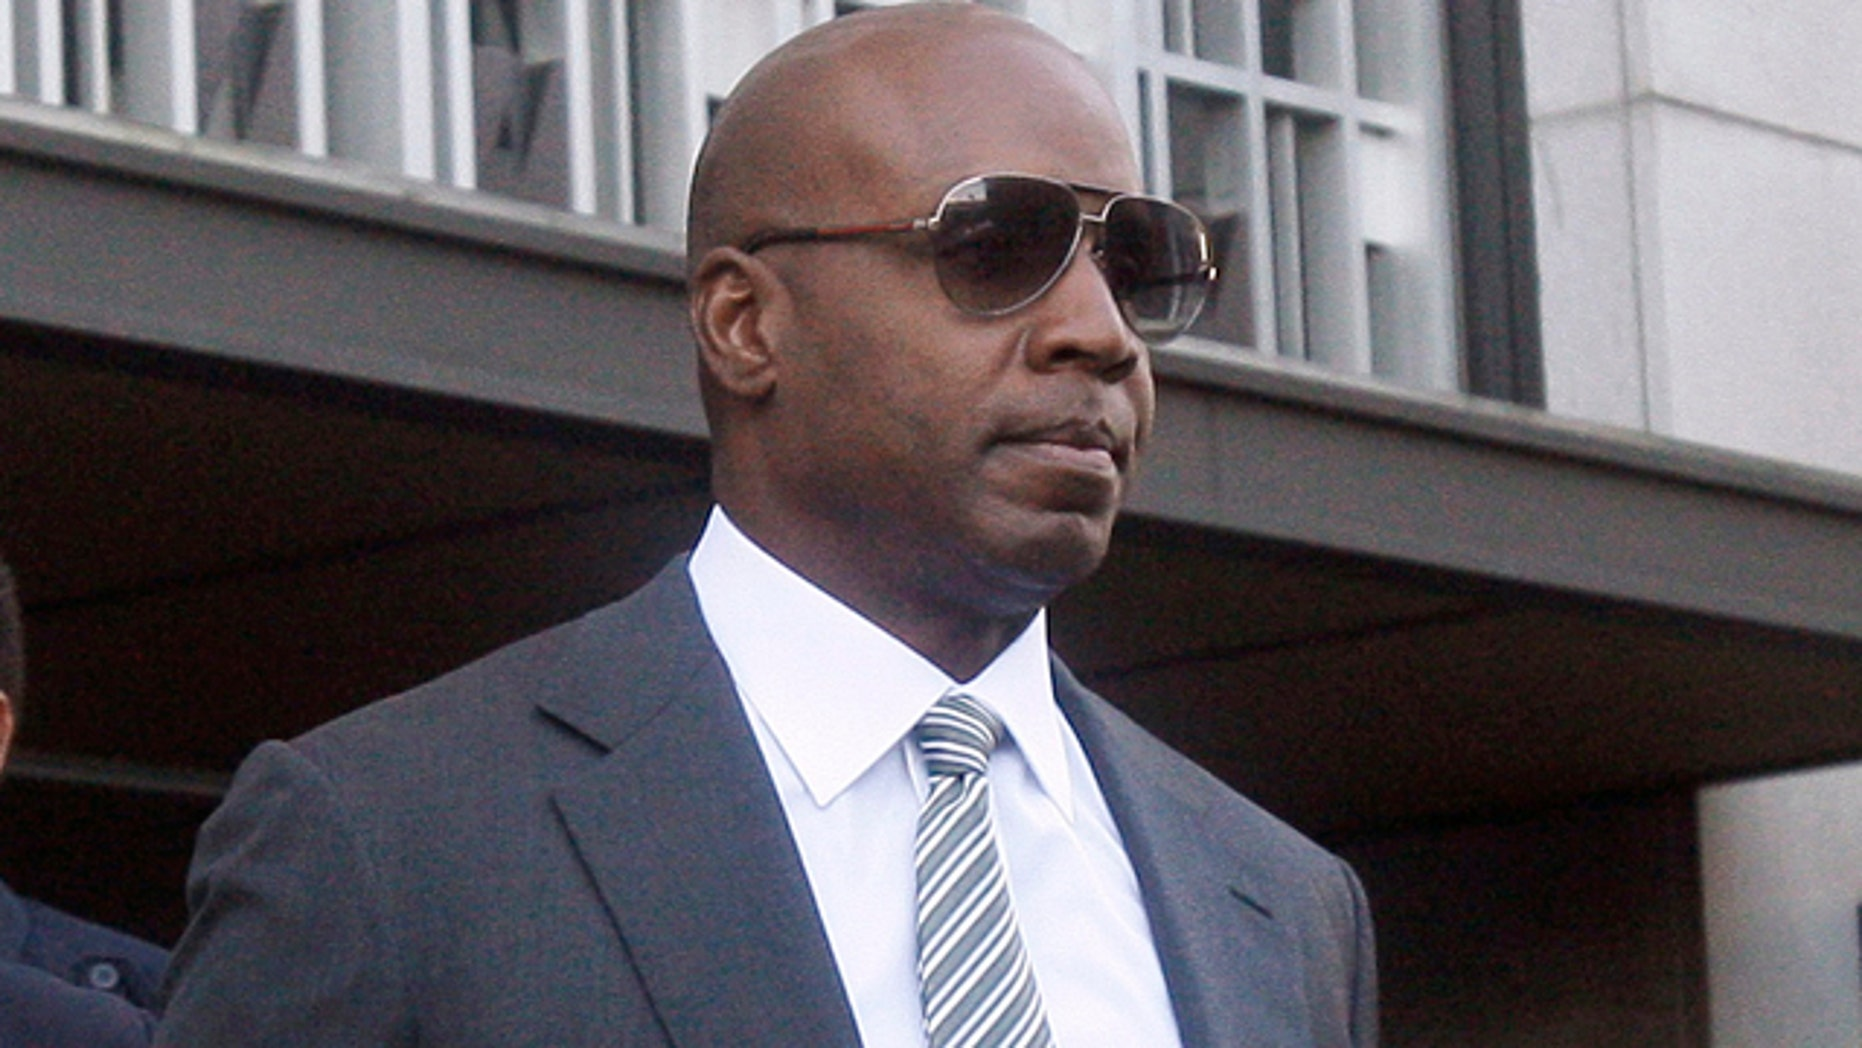 Jan. 21: Barry Bonds walks out of a federal courthouse in San Francisco.